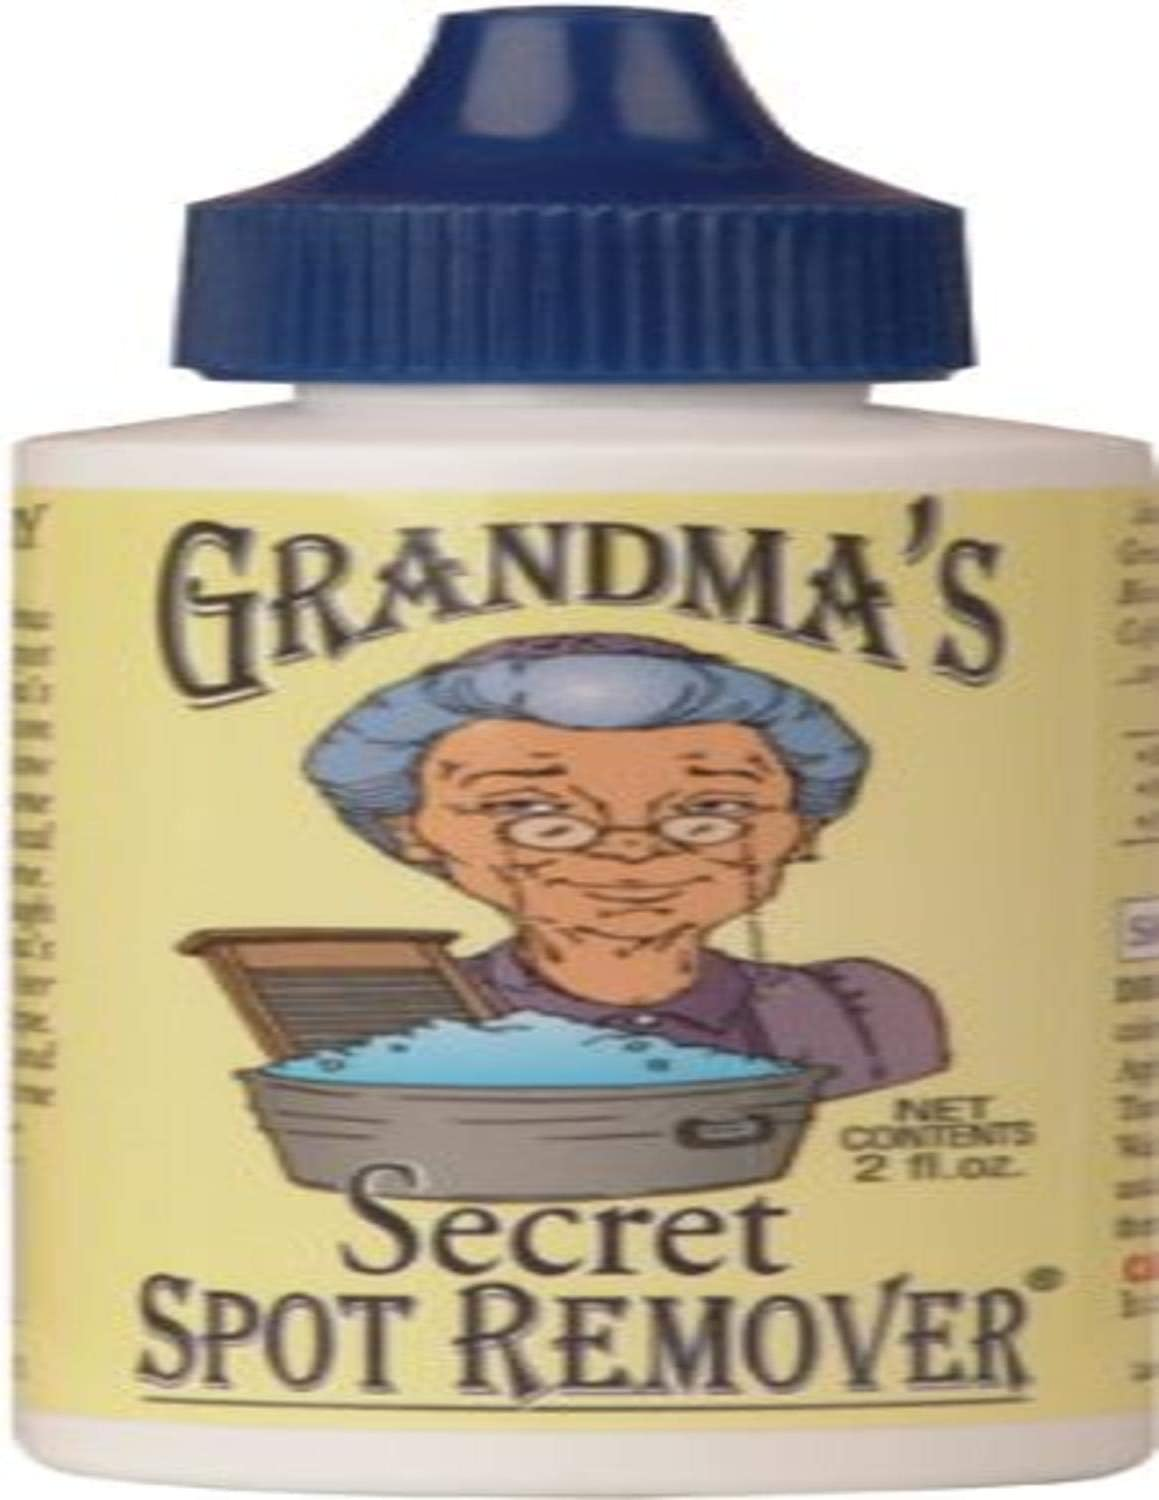 Grandma's Secret GSSR1001 Spot Remover, 2-Ounce, Single Pack, White, 2 Fl Oz